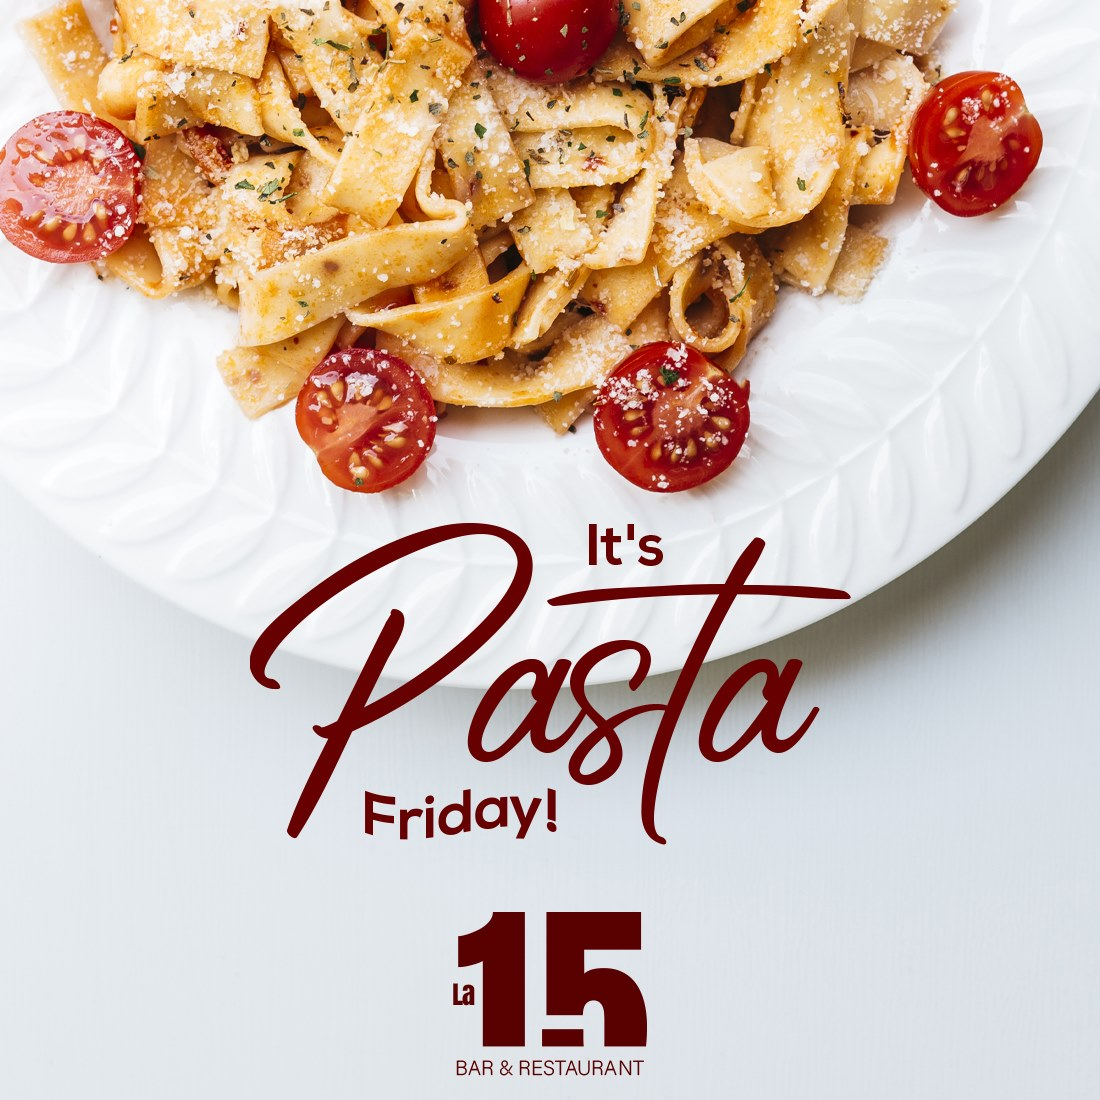 The perfect plan to start the weekend is to come and enjoy delicious pasta with your friends. We are happy to serve you. 🍝🥰⁣ 📍15-11 college point blv.⁣ .⁣ .⁣ #La15barrestaurant #nycfood #ncyeats #Pasta #Foodies https://t.co/hdXEfIKfXI